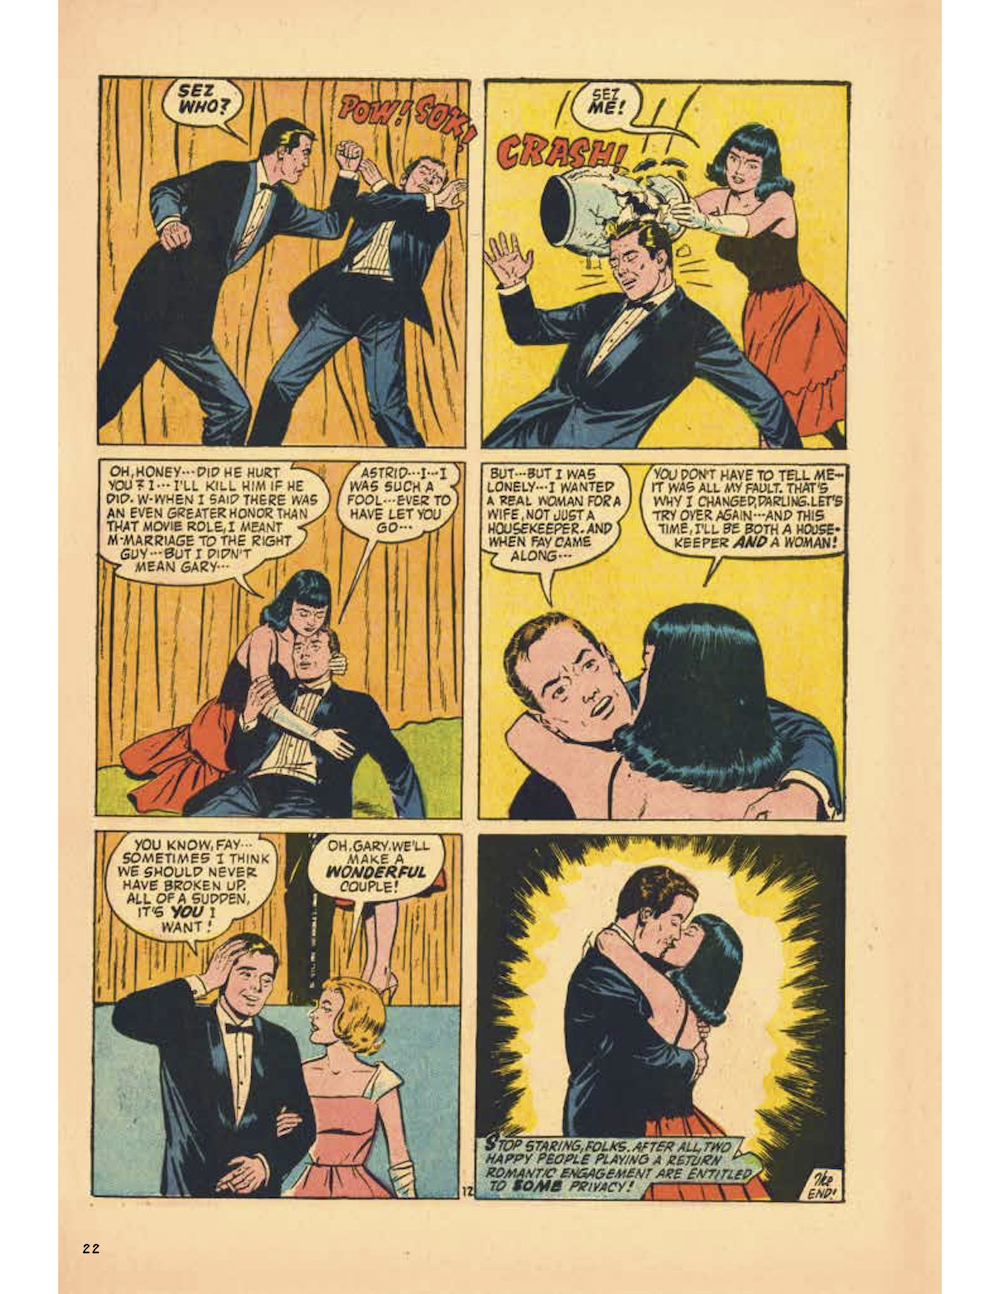 The Ridiculous Romance Comics of Ogden Whitney